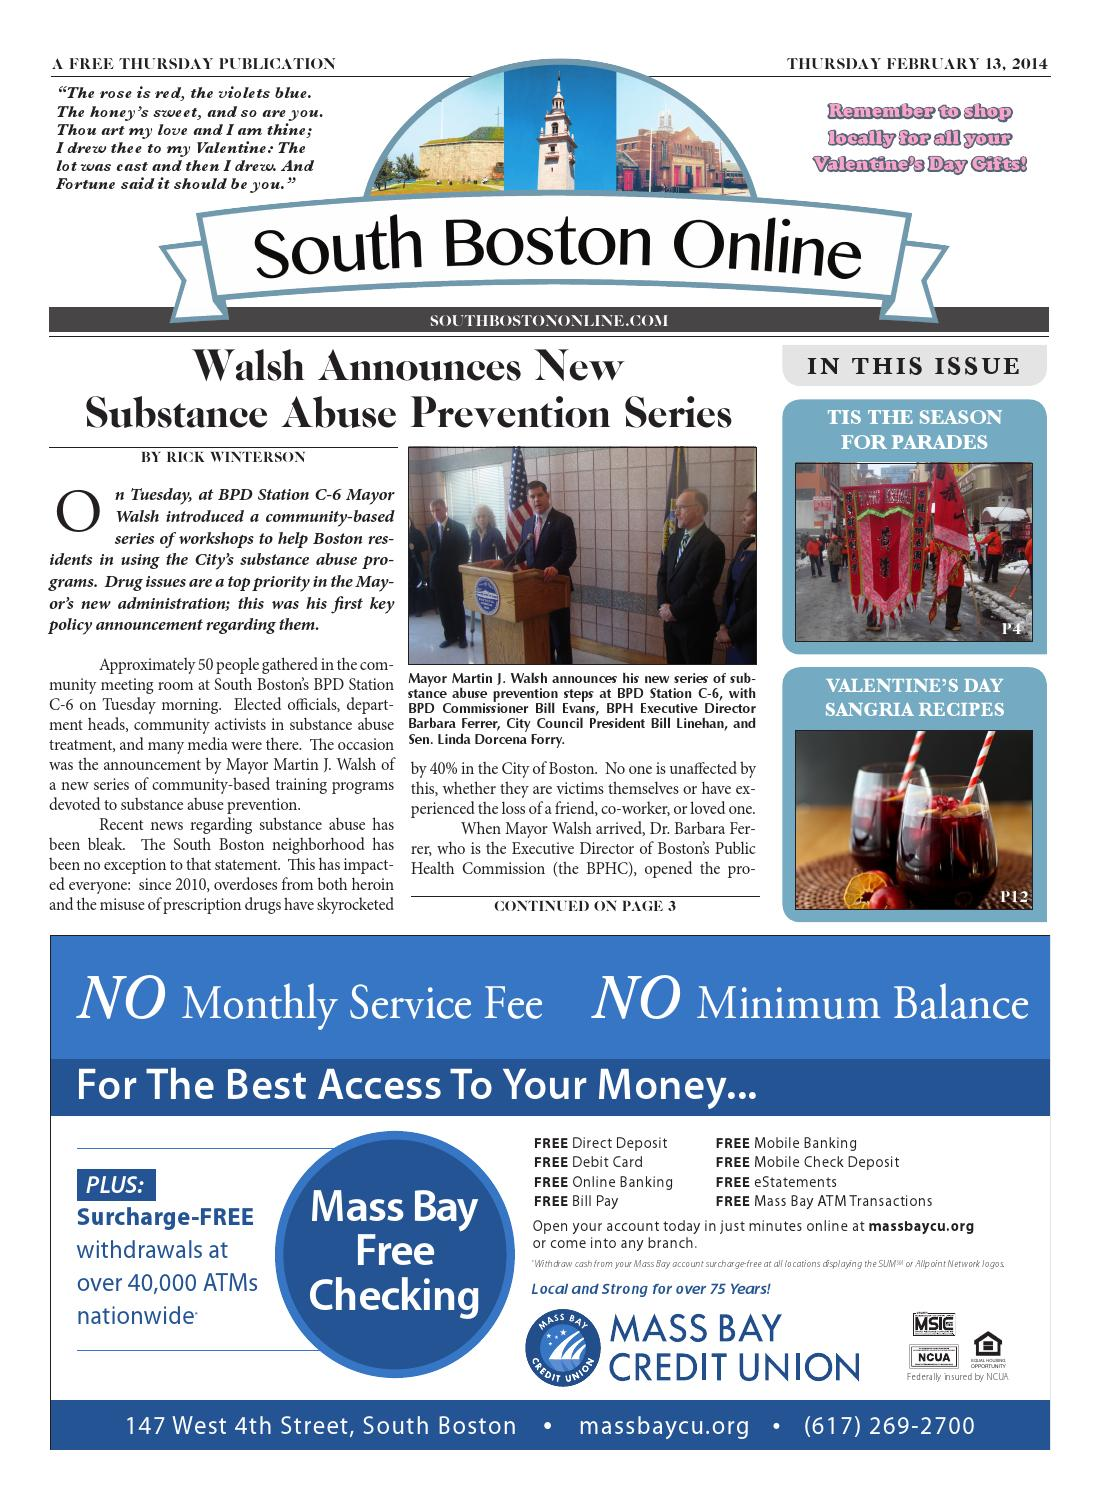 South Boston Online 2 13 14 by South Boston Online - issuu